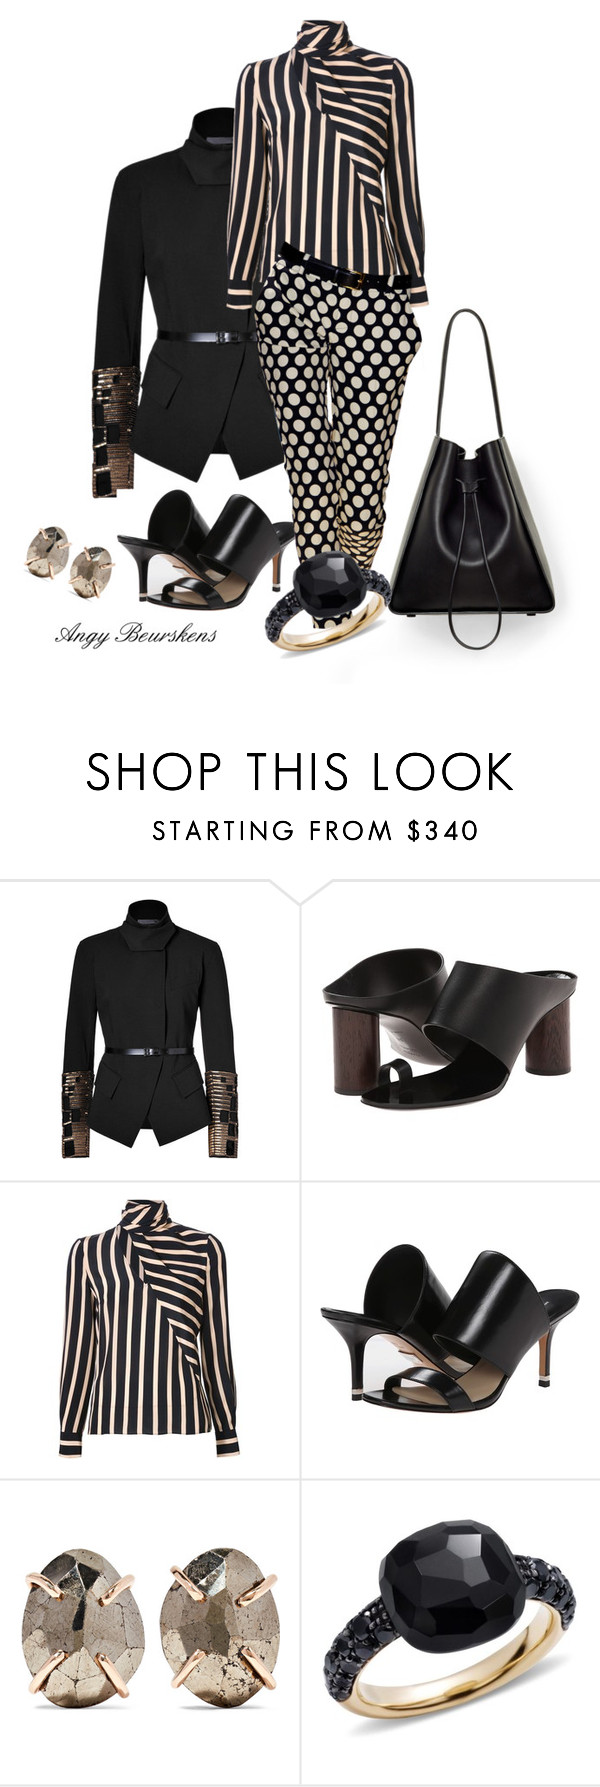 """Pattern Mix"" by angy-beurskens ❤ liked on Polyvore featuring Donna Karan, Proenza Schouler, Emanuel Ungaro, 3.1 Phillip Lim, Michael Kors, Melissa Joy Manning and Pomellato"